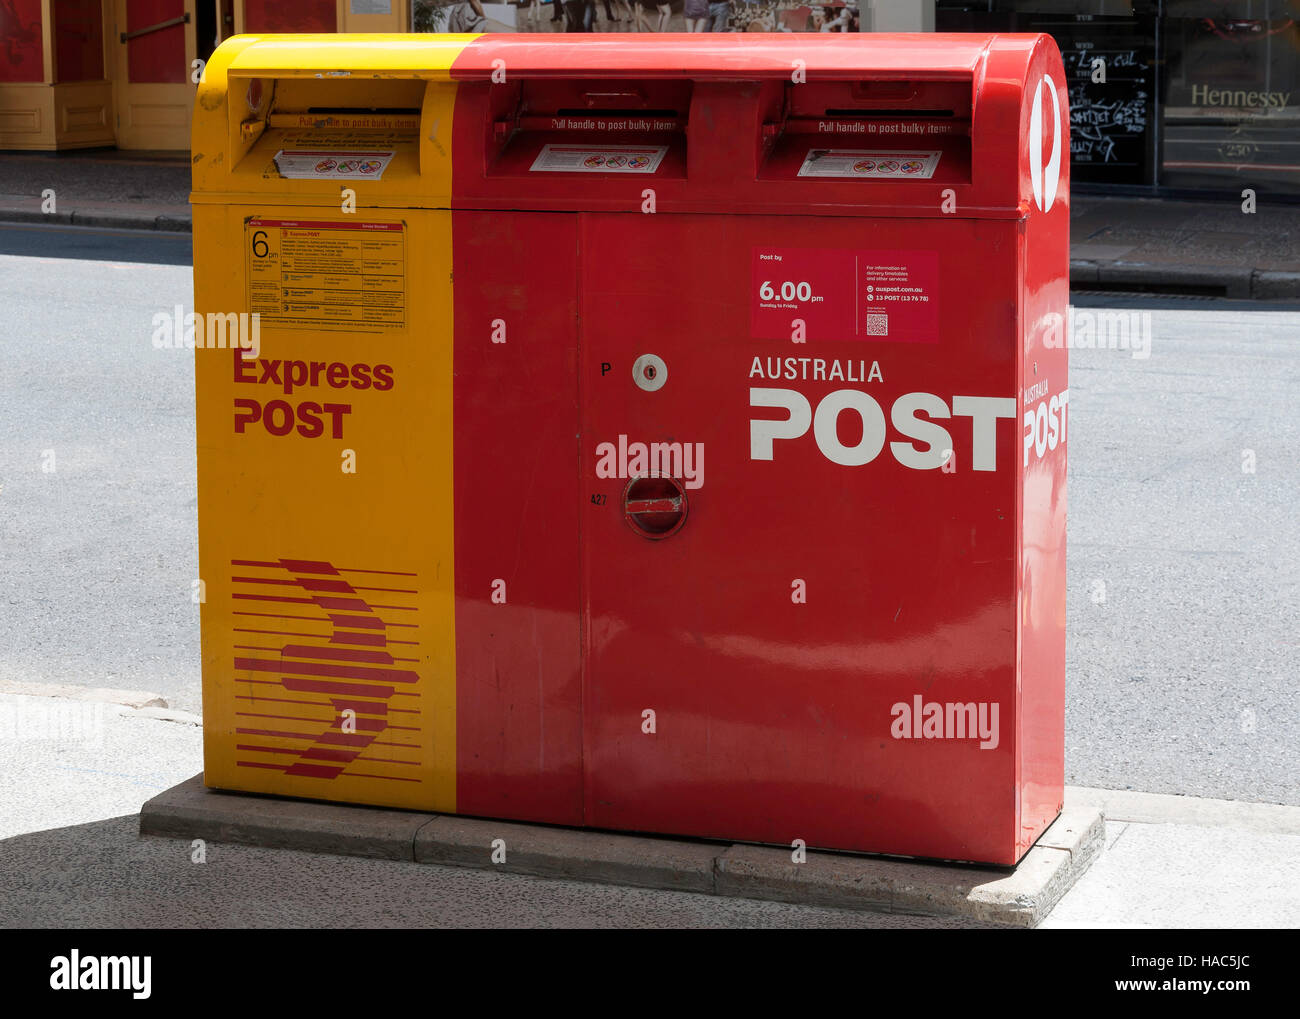 Post pillar box, Brunswick Street, Fortitude Valley, Brisbane, Queensland, Australia - Stock Image